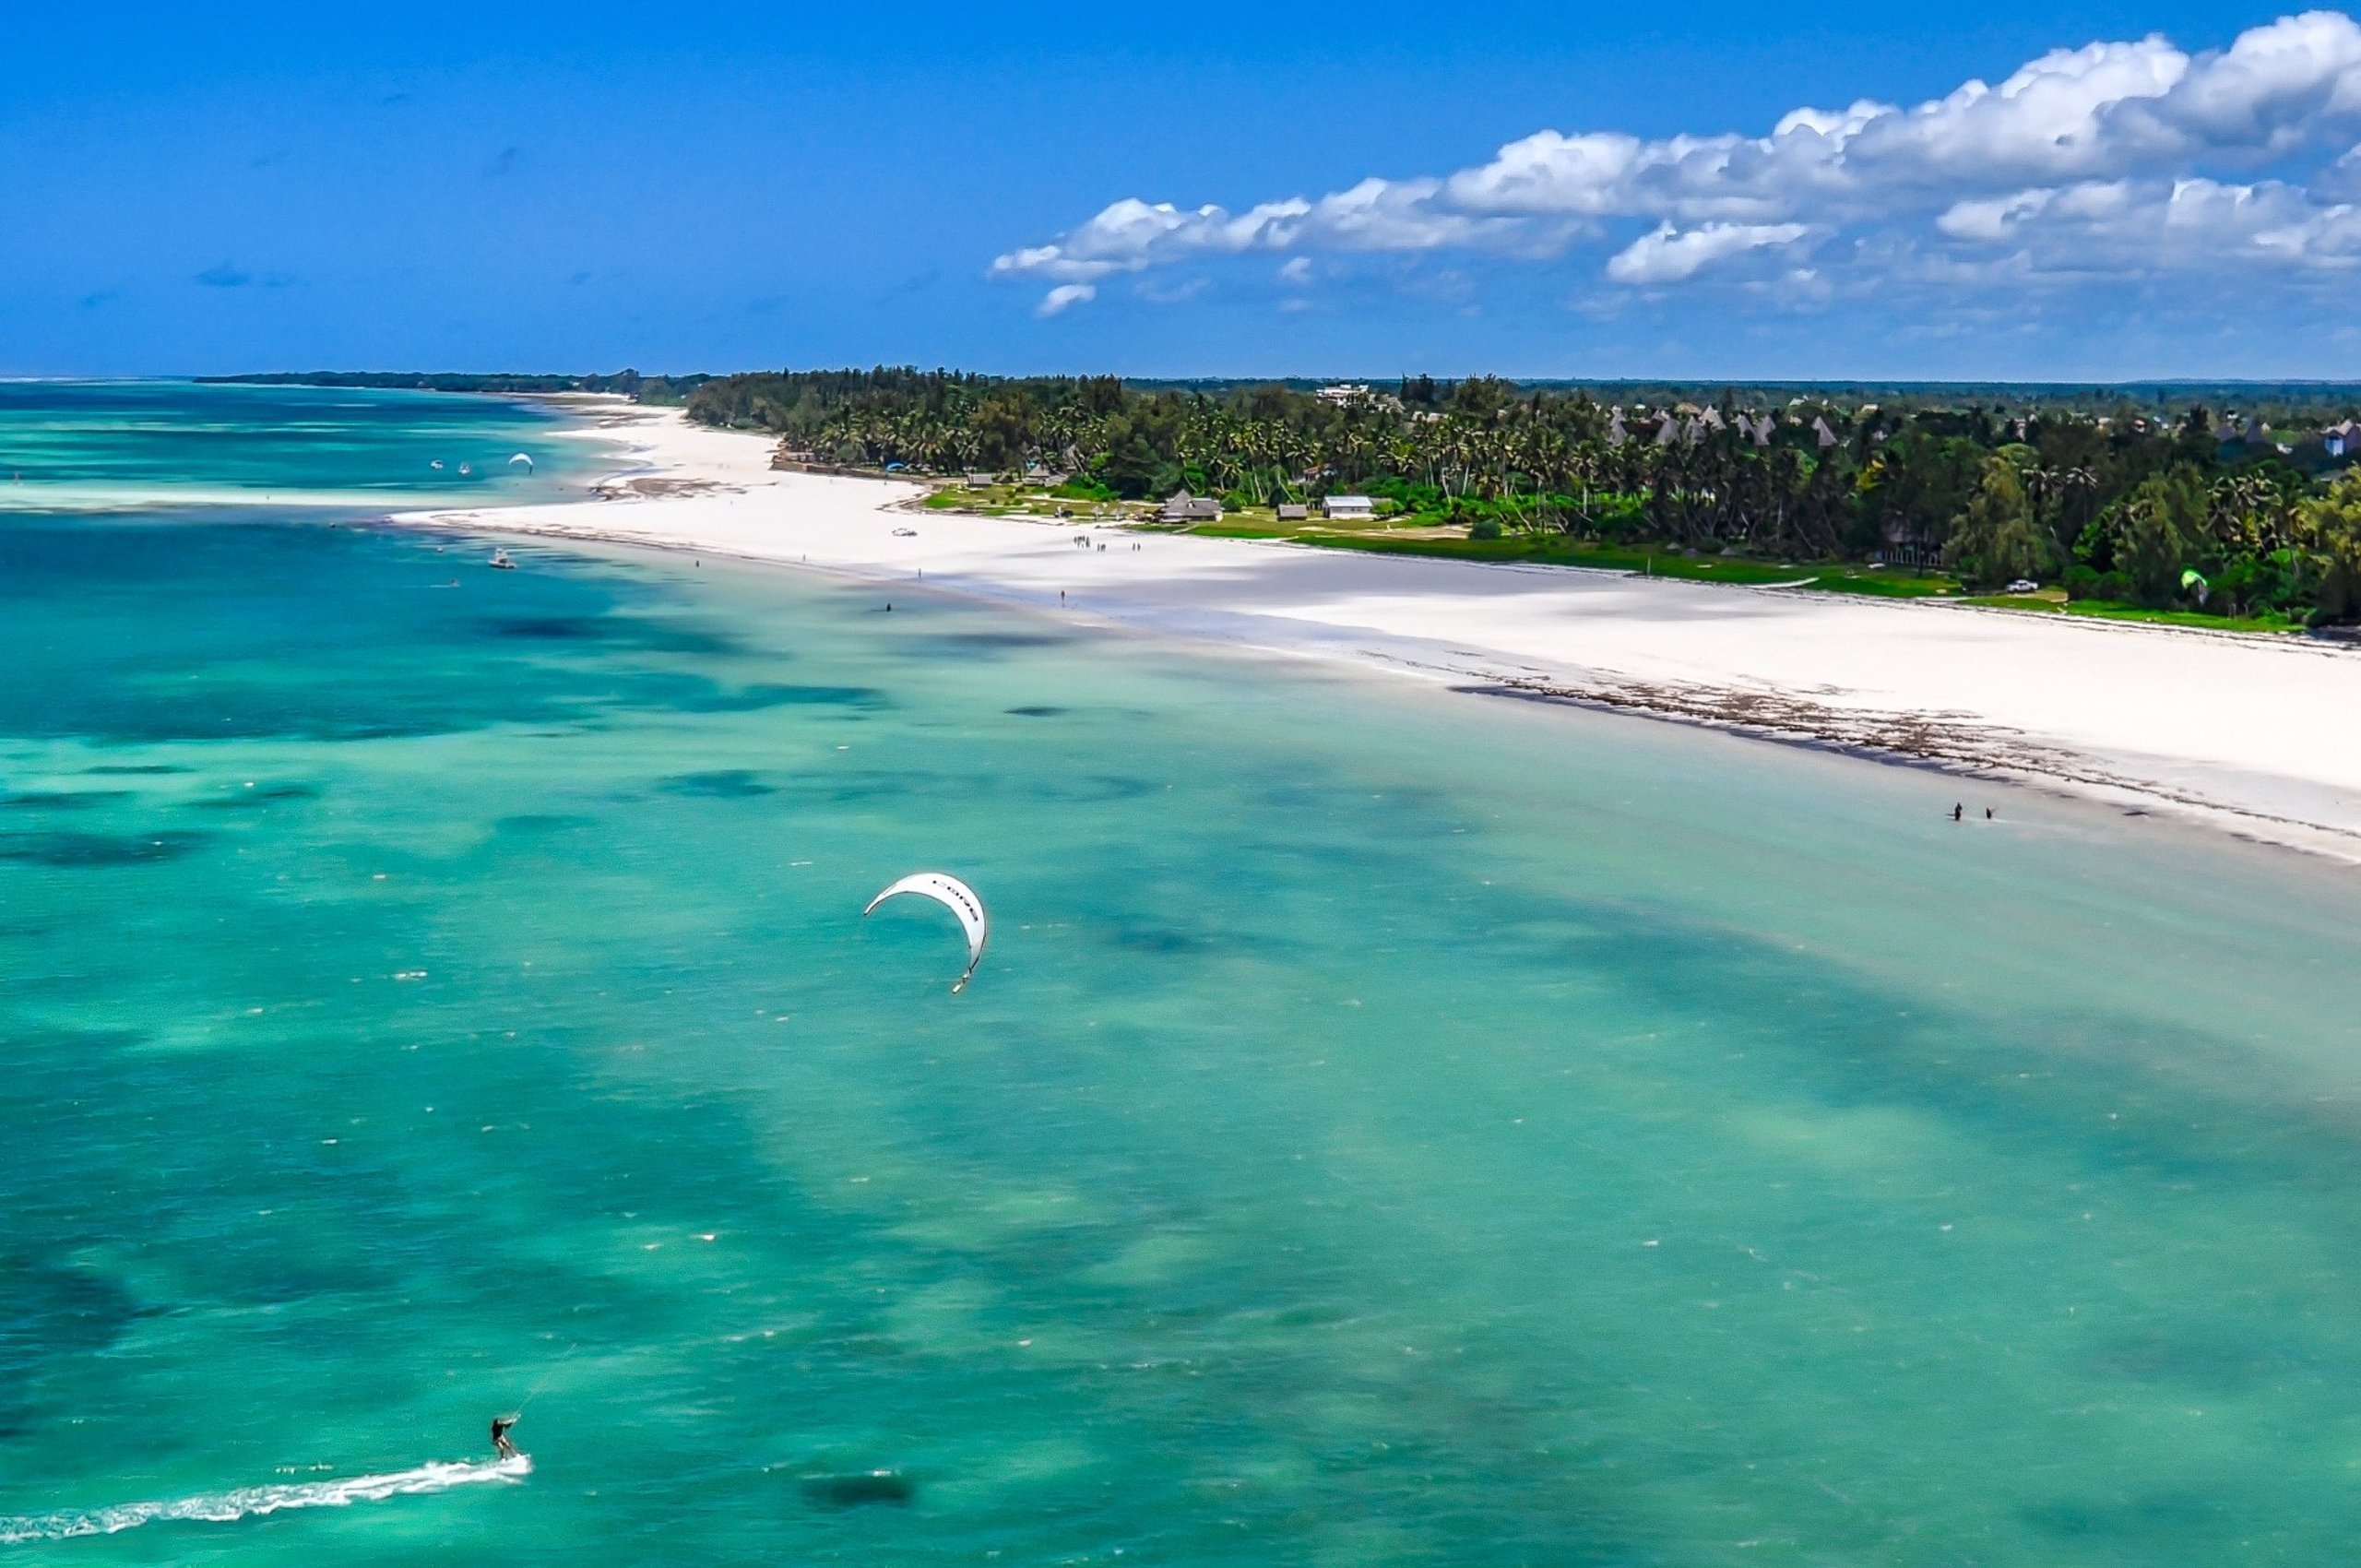 paradisiac kite spot - How To Get From Mombasa Airport To Diani Beach